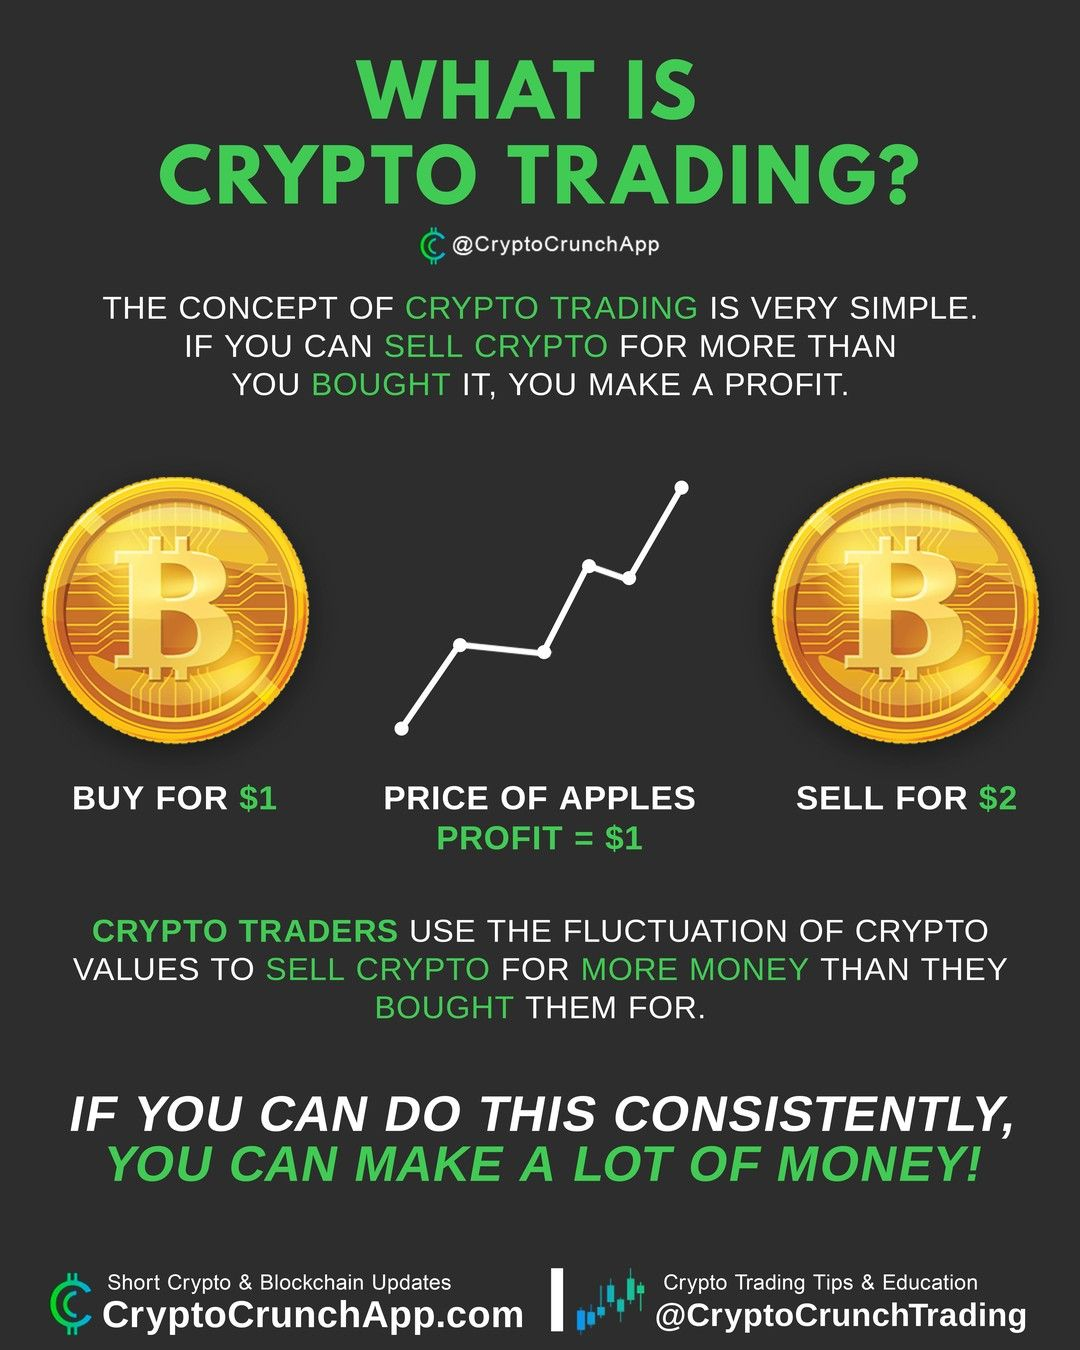 Cryptocrunchtrading Crypto Traders Use The Fluctuation Of Crypto Values To Sell Crypto For More Money Than In 2020 Things To Sell Cryptocurrency Cryptocurrency News